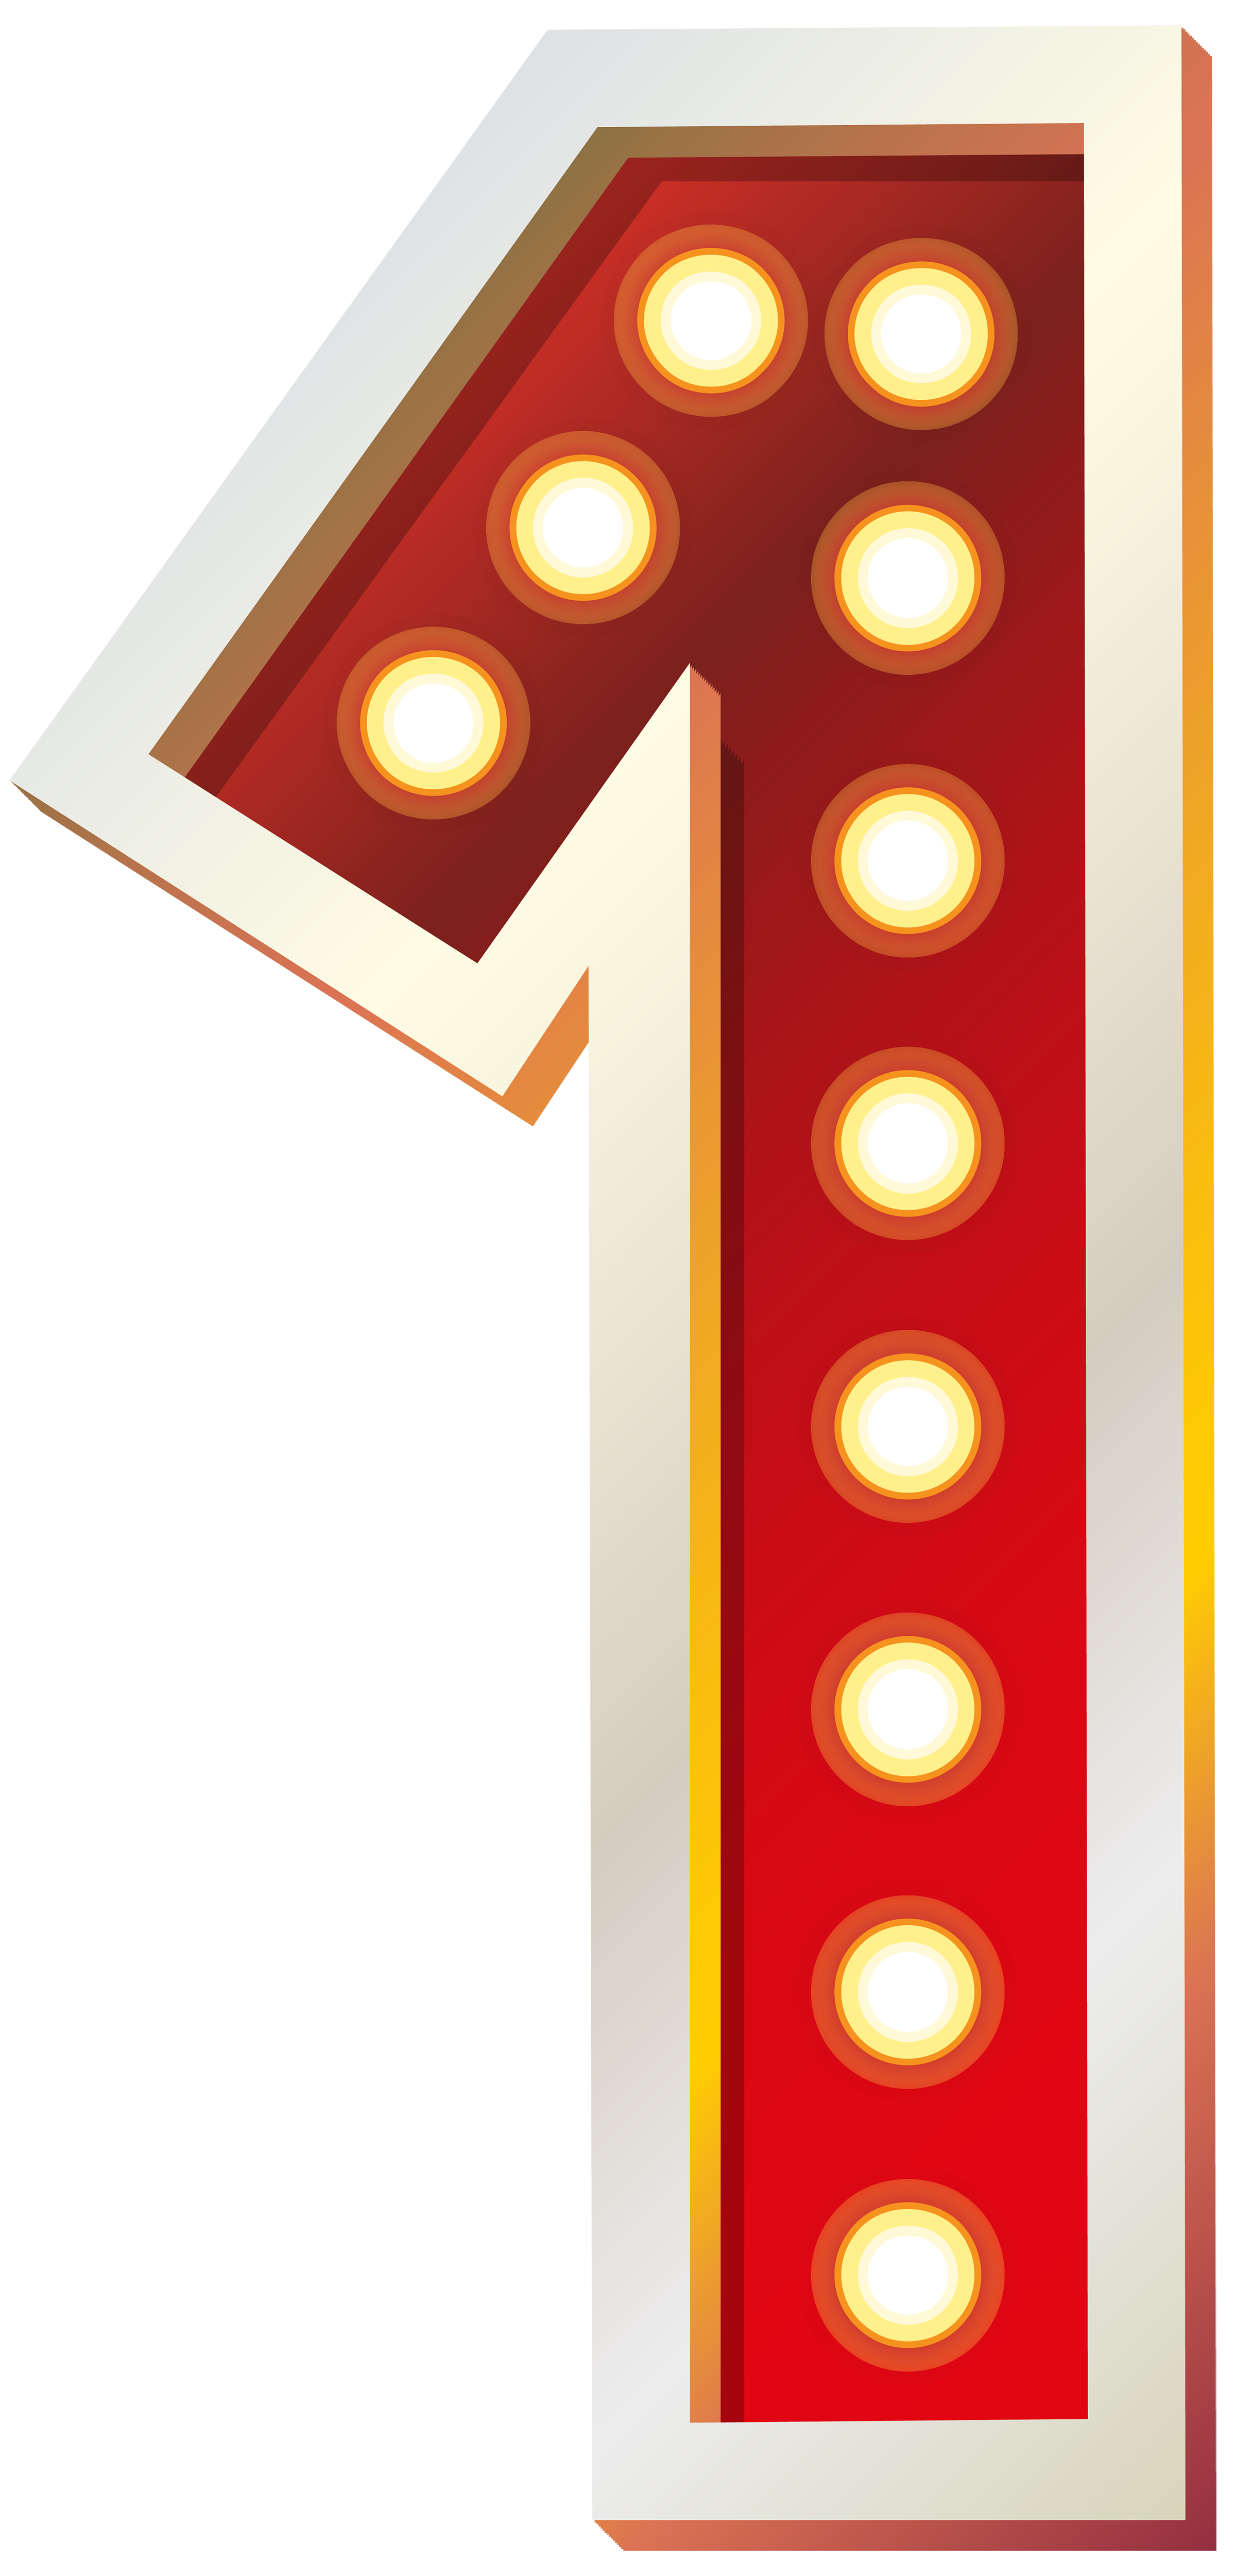 Red Number One with Lights PNG Clip Art Image.